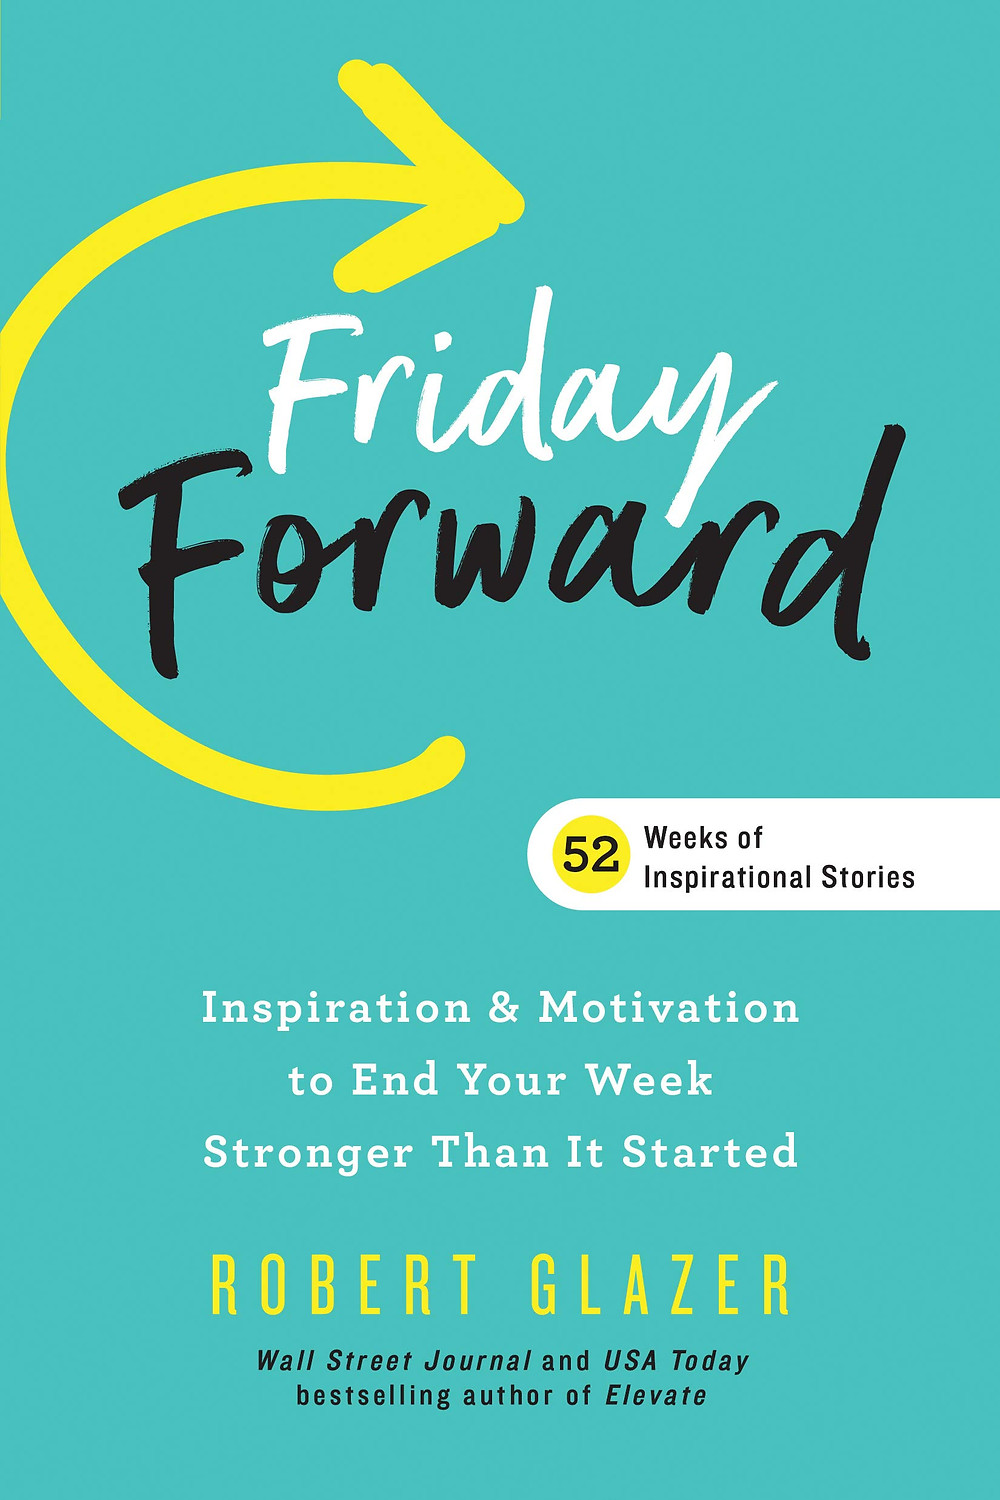 Friday Forward: Inspiration & Motivation to End Your Week Stronger Than It Started - by Robert Glazer